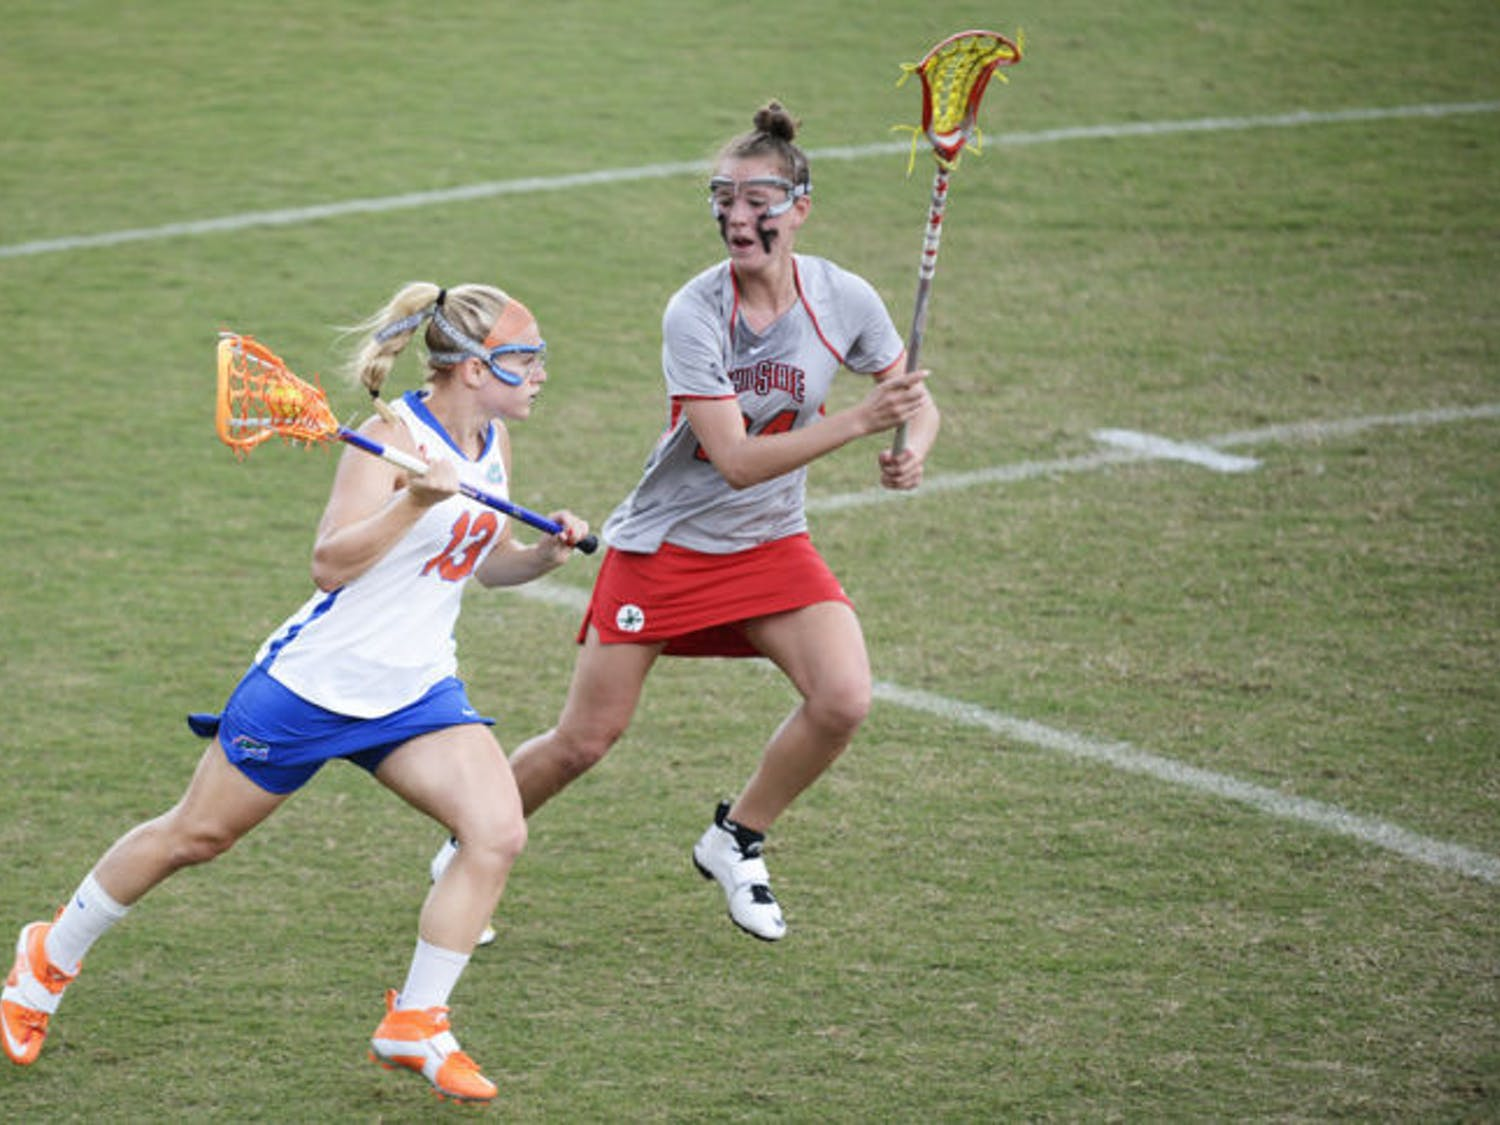 Florida's Ashley Bruns (13) attacks the net against Ohio State defender Tayler Kuzma (24) in the Gators' 13-7 win against the Buckeyes on March 23 at Dizney Stadium. Northwestern held Bruns to one goal in Florida's 8-3 loss on Sunday.